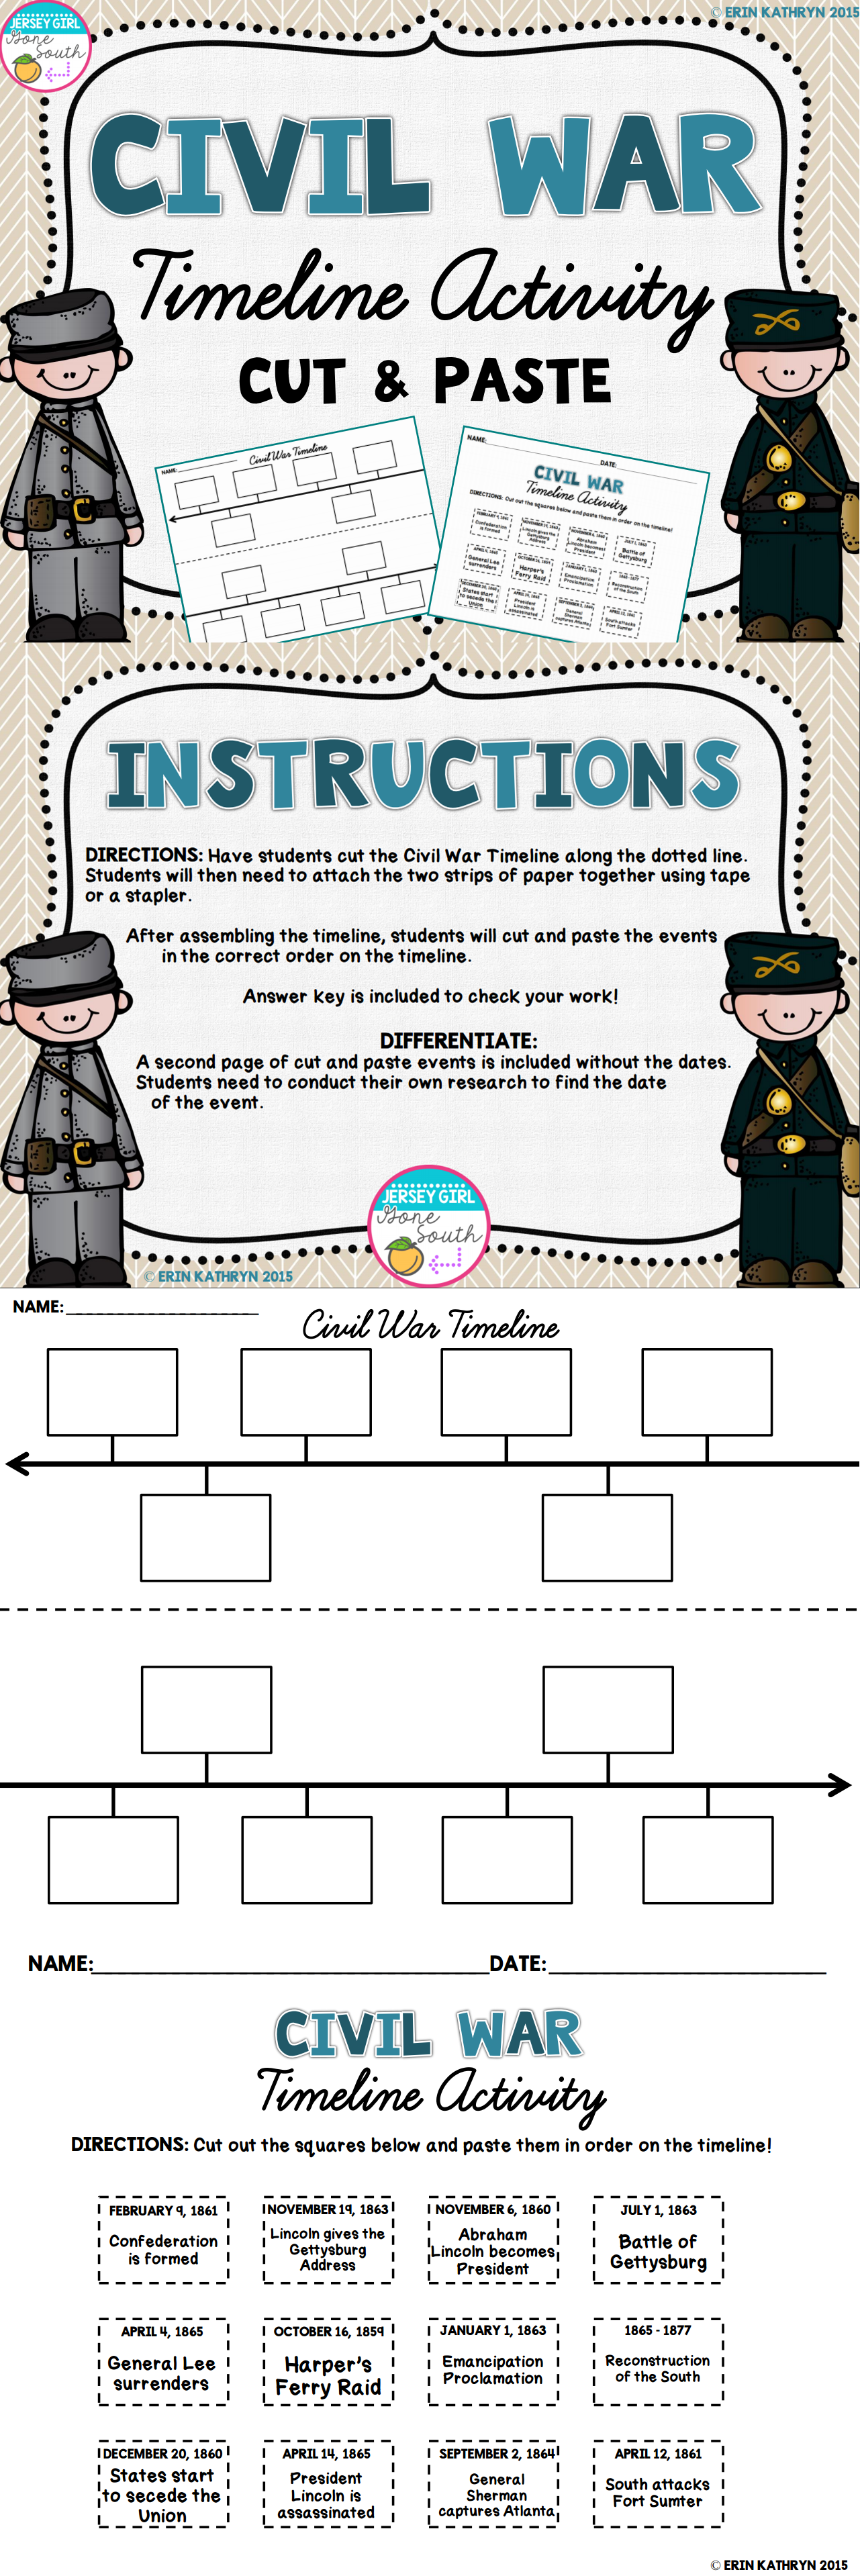 Worksheets Civil War Timeline Worksheet civil war timeline activity teaching ideas pinterest this is an awesome way for students to visually see the events